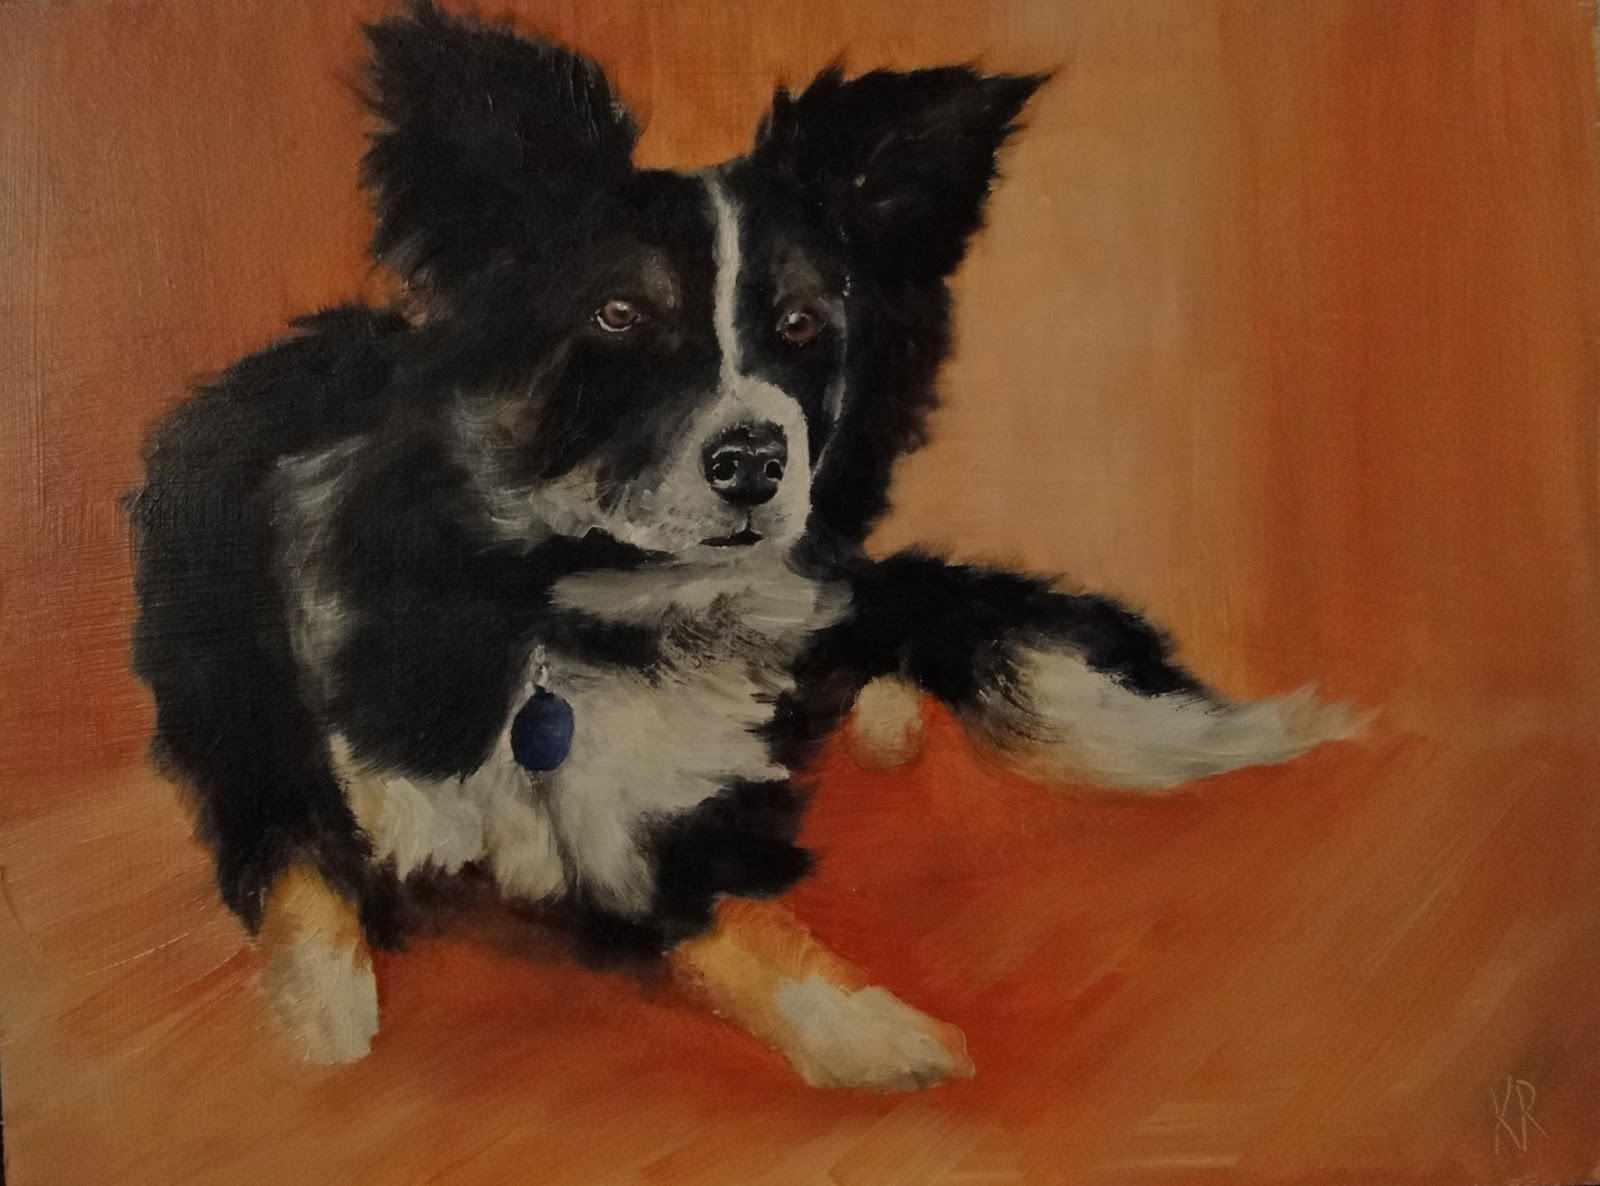 oil painting of a border collie - his distinctive stare. A pet portrait by Karen.